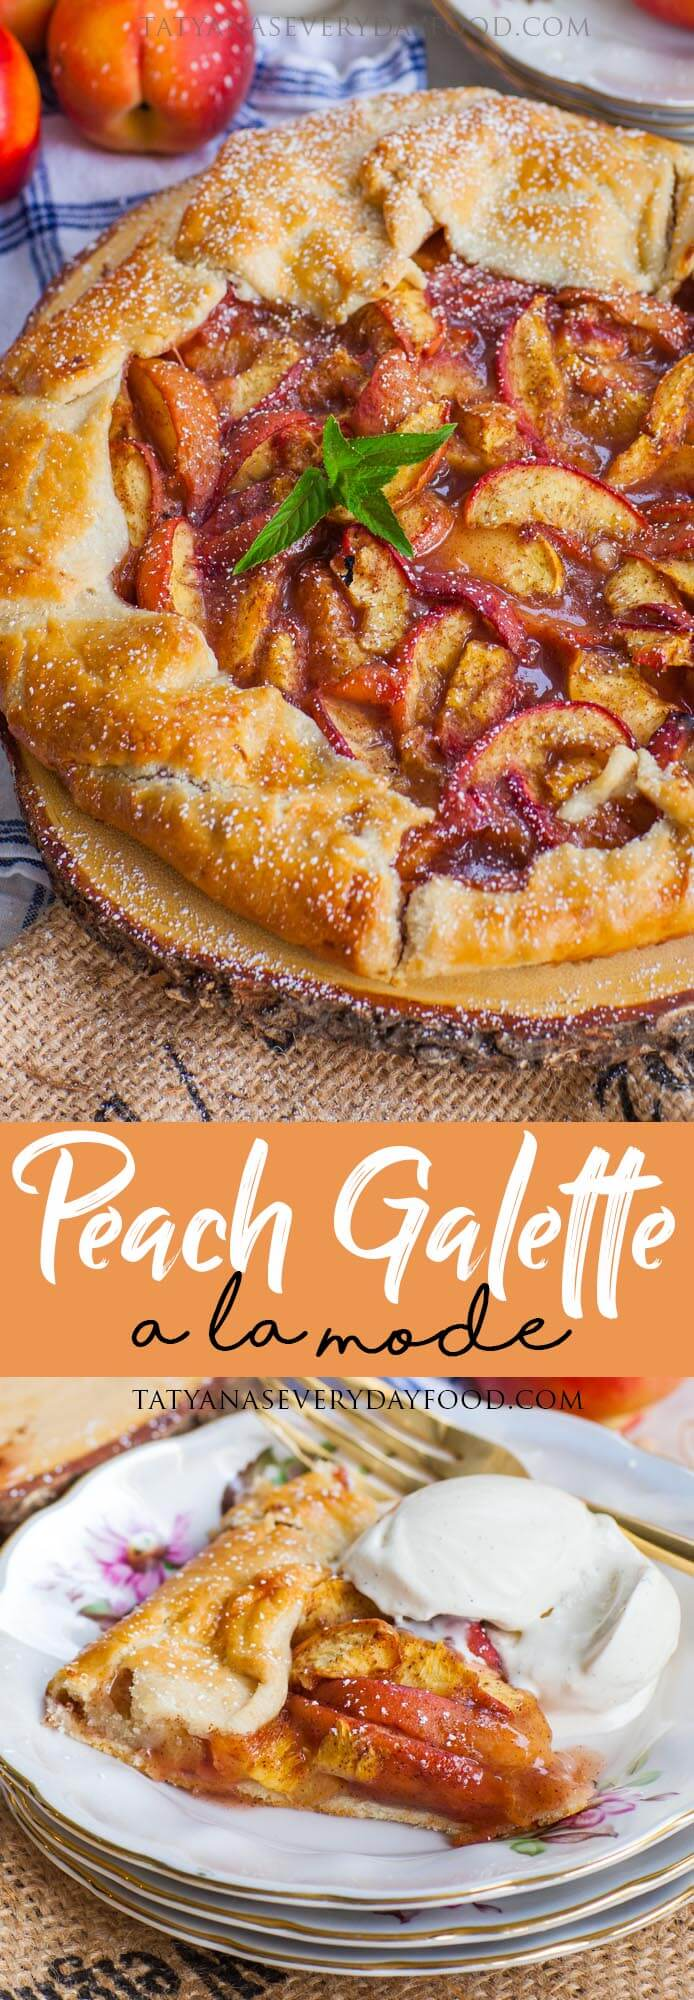 Easy Peach Galette A La Mode video recipe